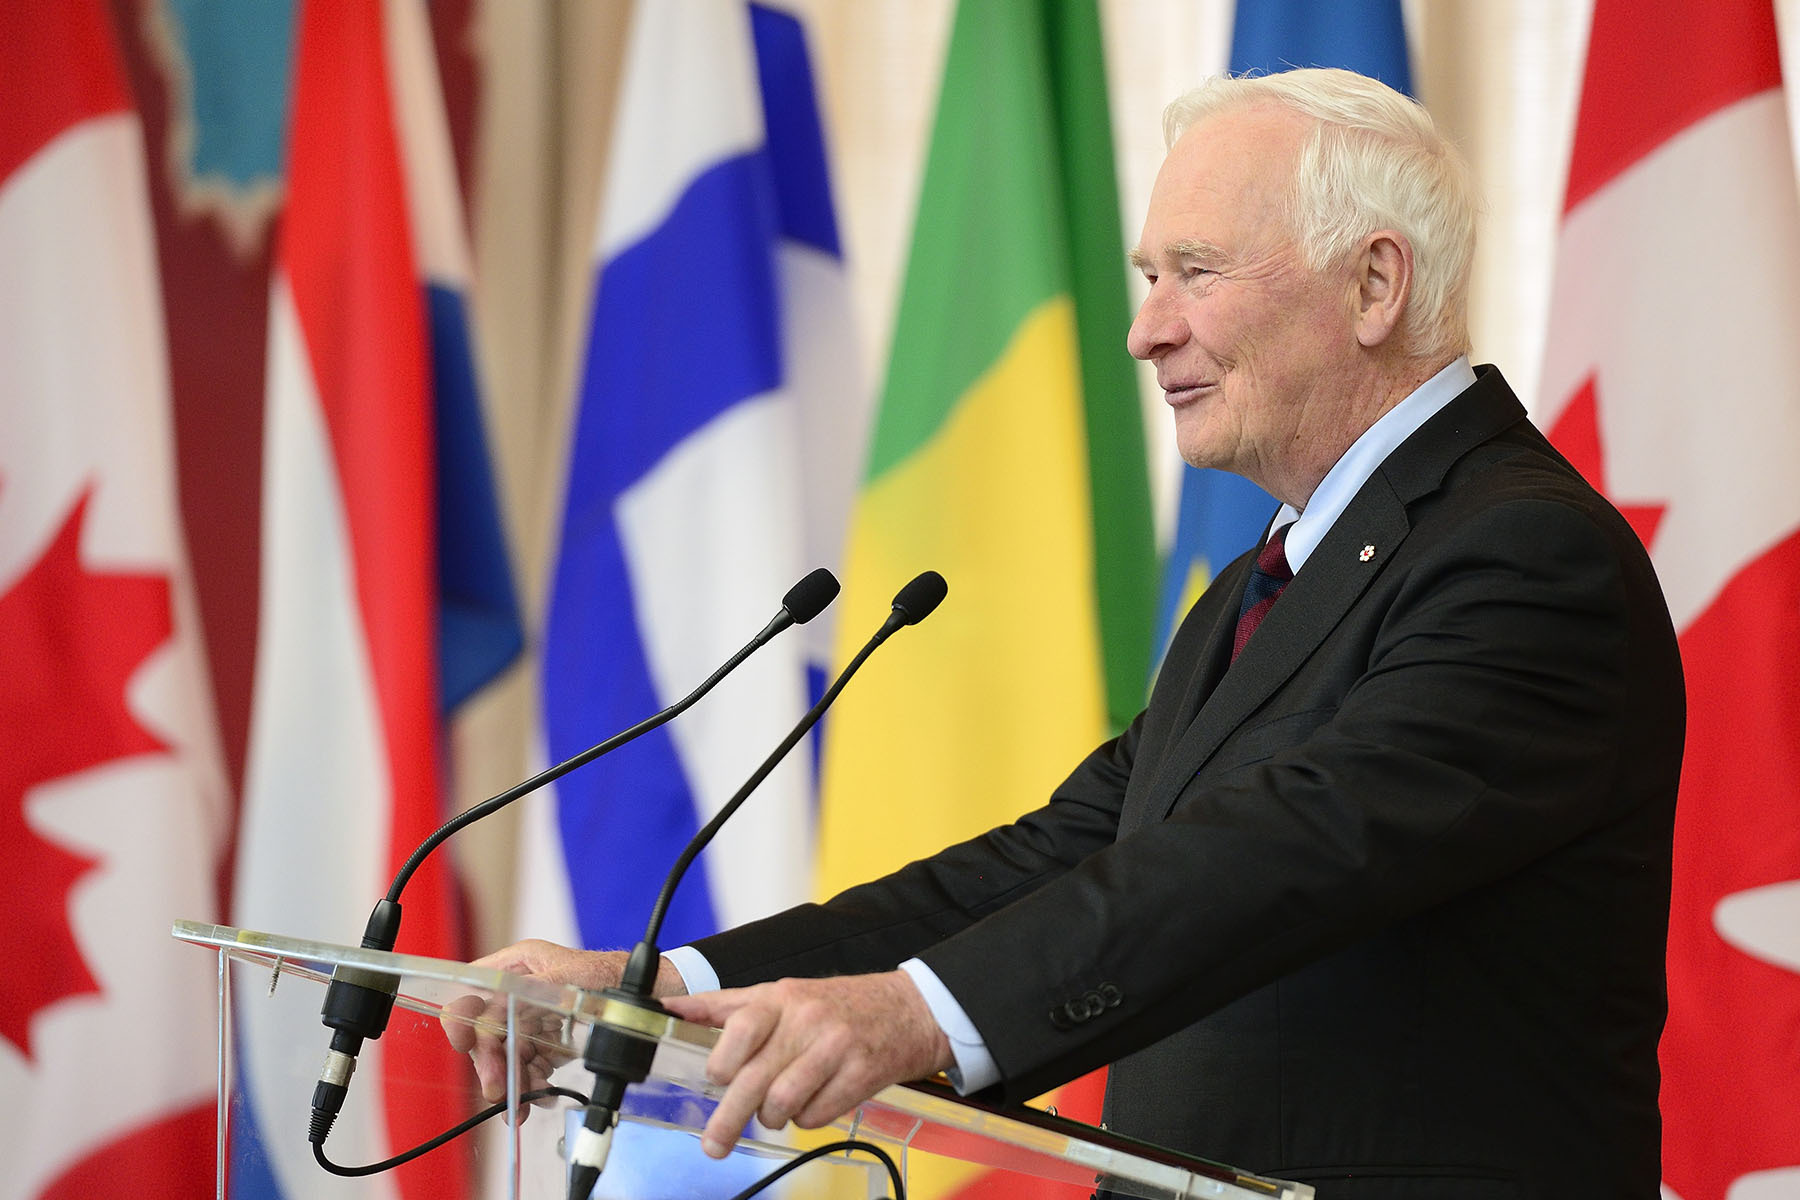 """I  want to thank you for being here to learn about Canada and to share your country's unique perspective,"" said the Governor General. ""Let's all work together towards a fairer, more just and peaceful world."""